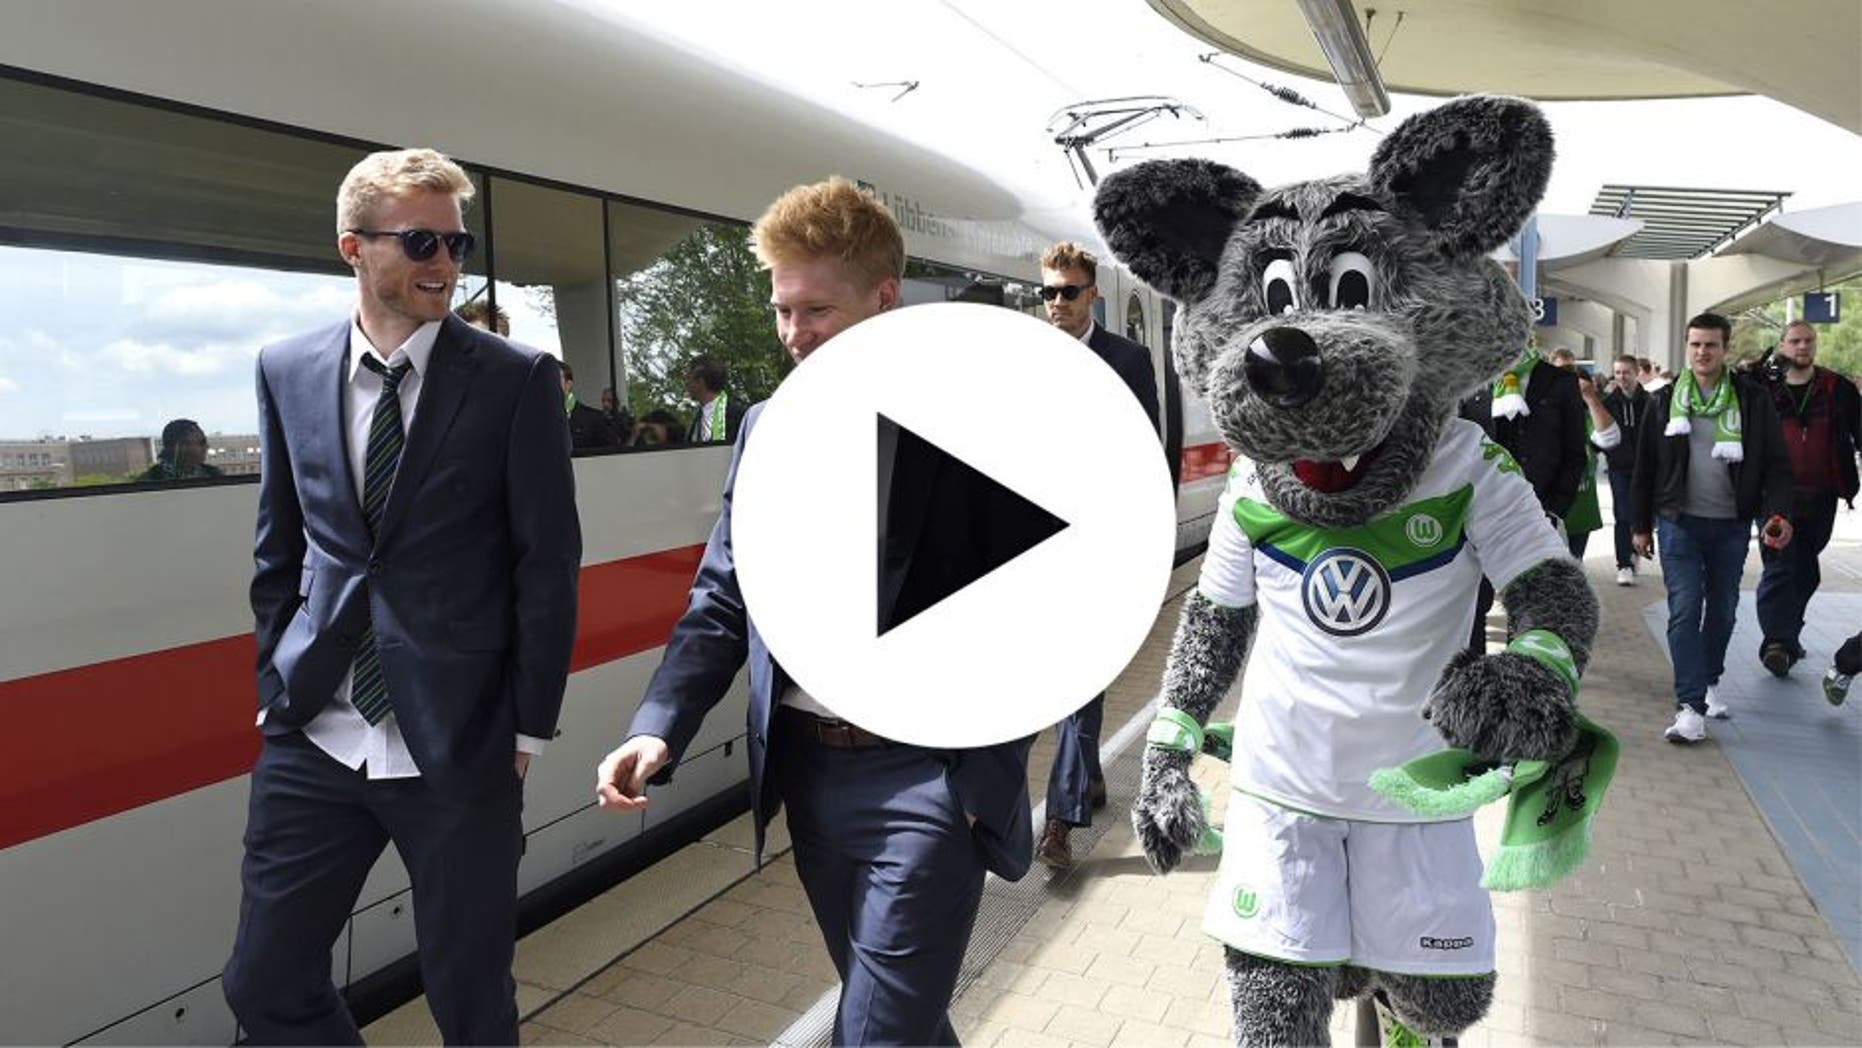 Wolfsburg's striker Andre Schuerrle (L) walks with Wolfsburg's Belgian midfielder Kevin De Bruyne and Wolfsburg's mascot on arrival at the main station in Wolfsburg, central Germany on May 31, 2015, after the German Cup DFB Pokal final football match between BVB Borussia Dortmund and VfL Wolfsburg on May 30 in Berlin. Wolfsburg won the match 1-3. AFP PHOTO / TOBIAS SCHWARZ (Photo credit should read TOBIAS SCHWARZ/AFP/Getty Images)